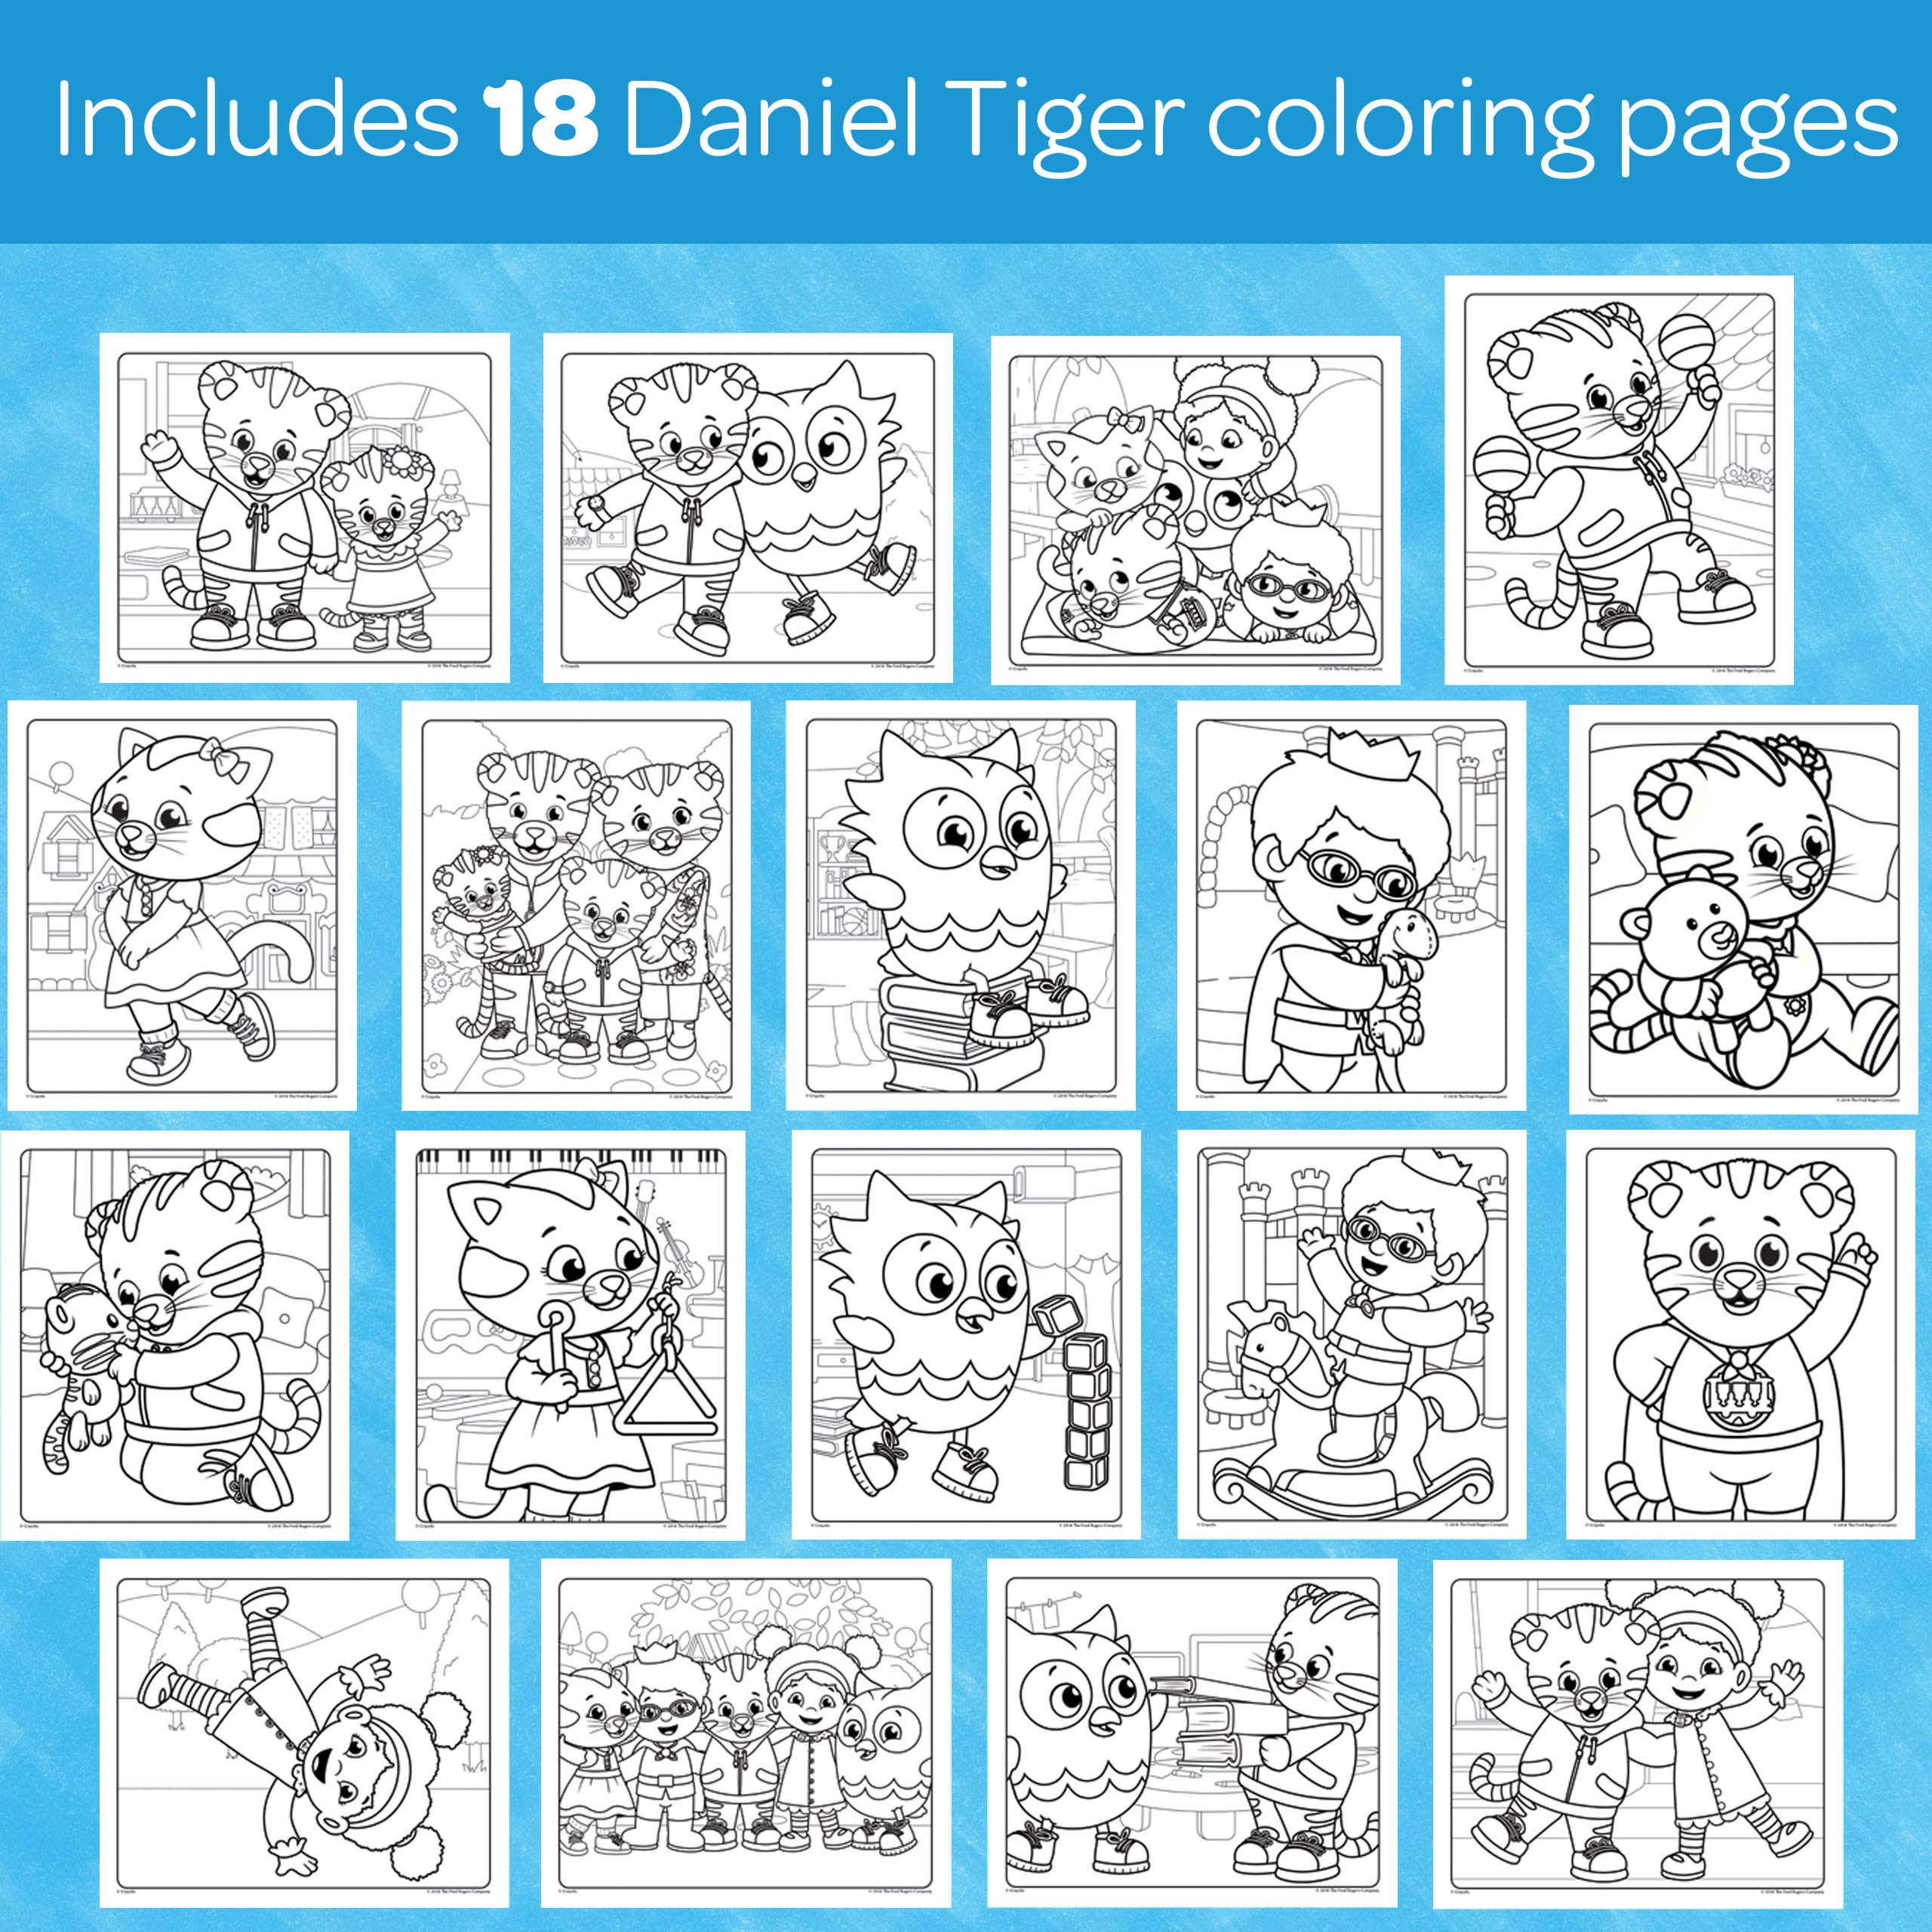 Crayola Color Wonder Daniel Tiger S Neighborhood 18 Mess Free Coloring Pages Gift For Age 3 4 5 6 Buy Online At Best Price In Ksa Souq Is Now Amazon Sa